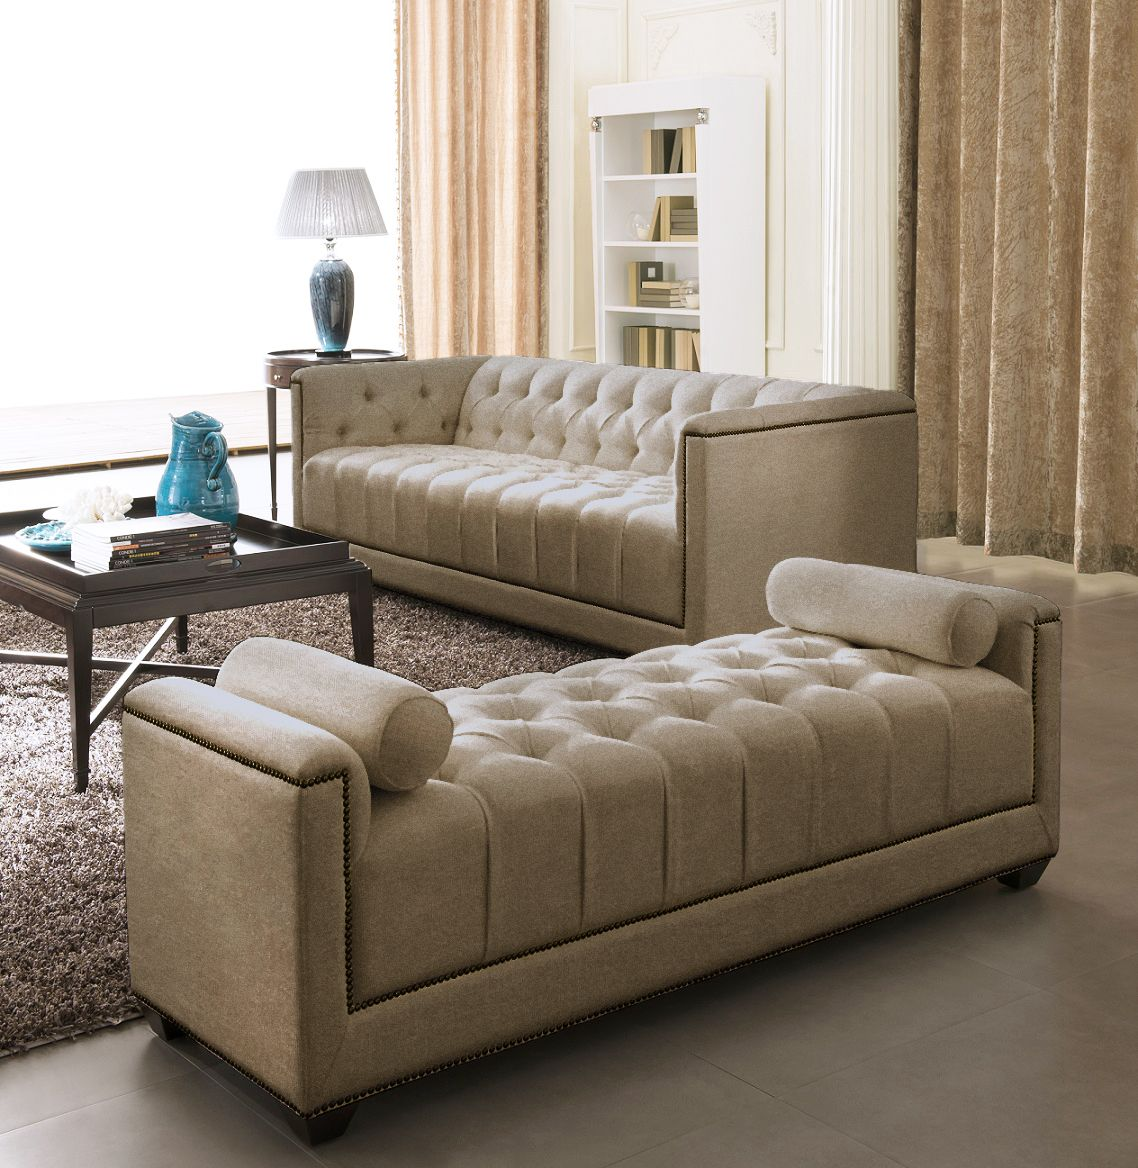 Fabric Sofa Set Eden Gold Living Room Sofa Design